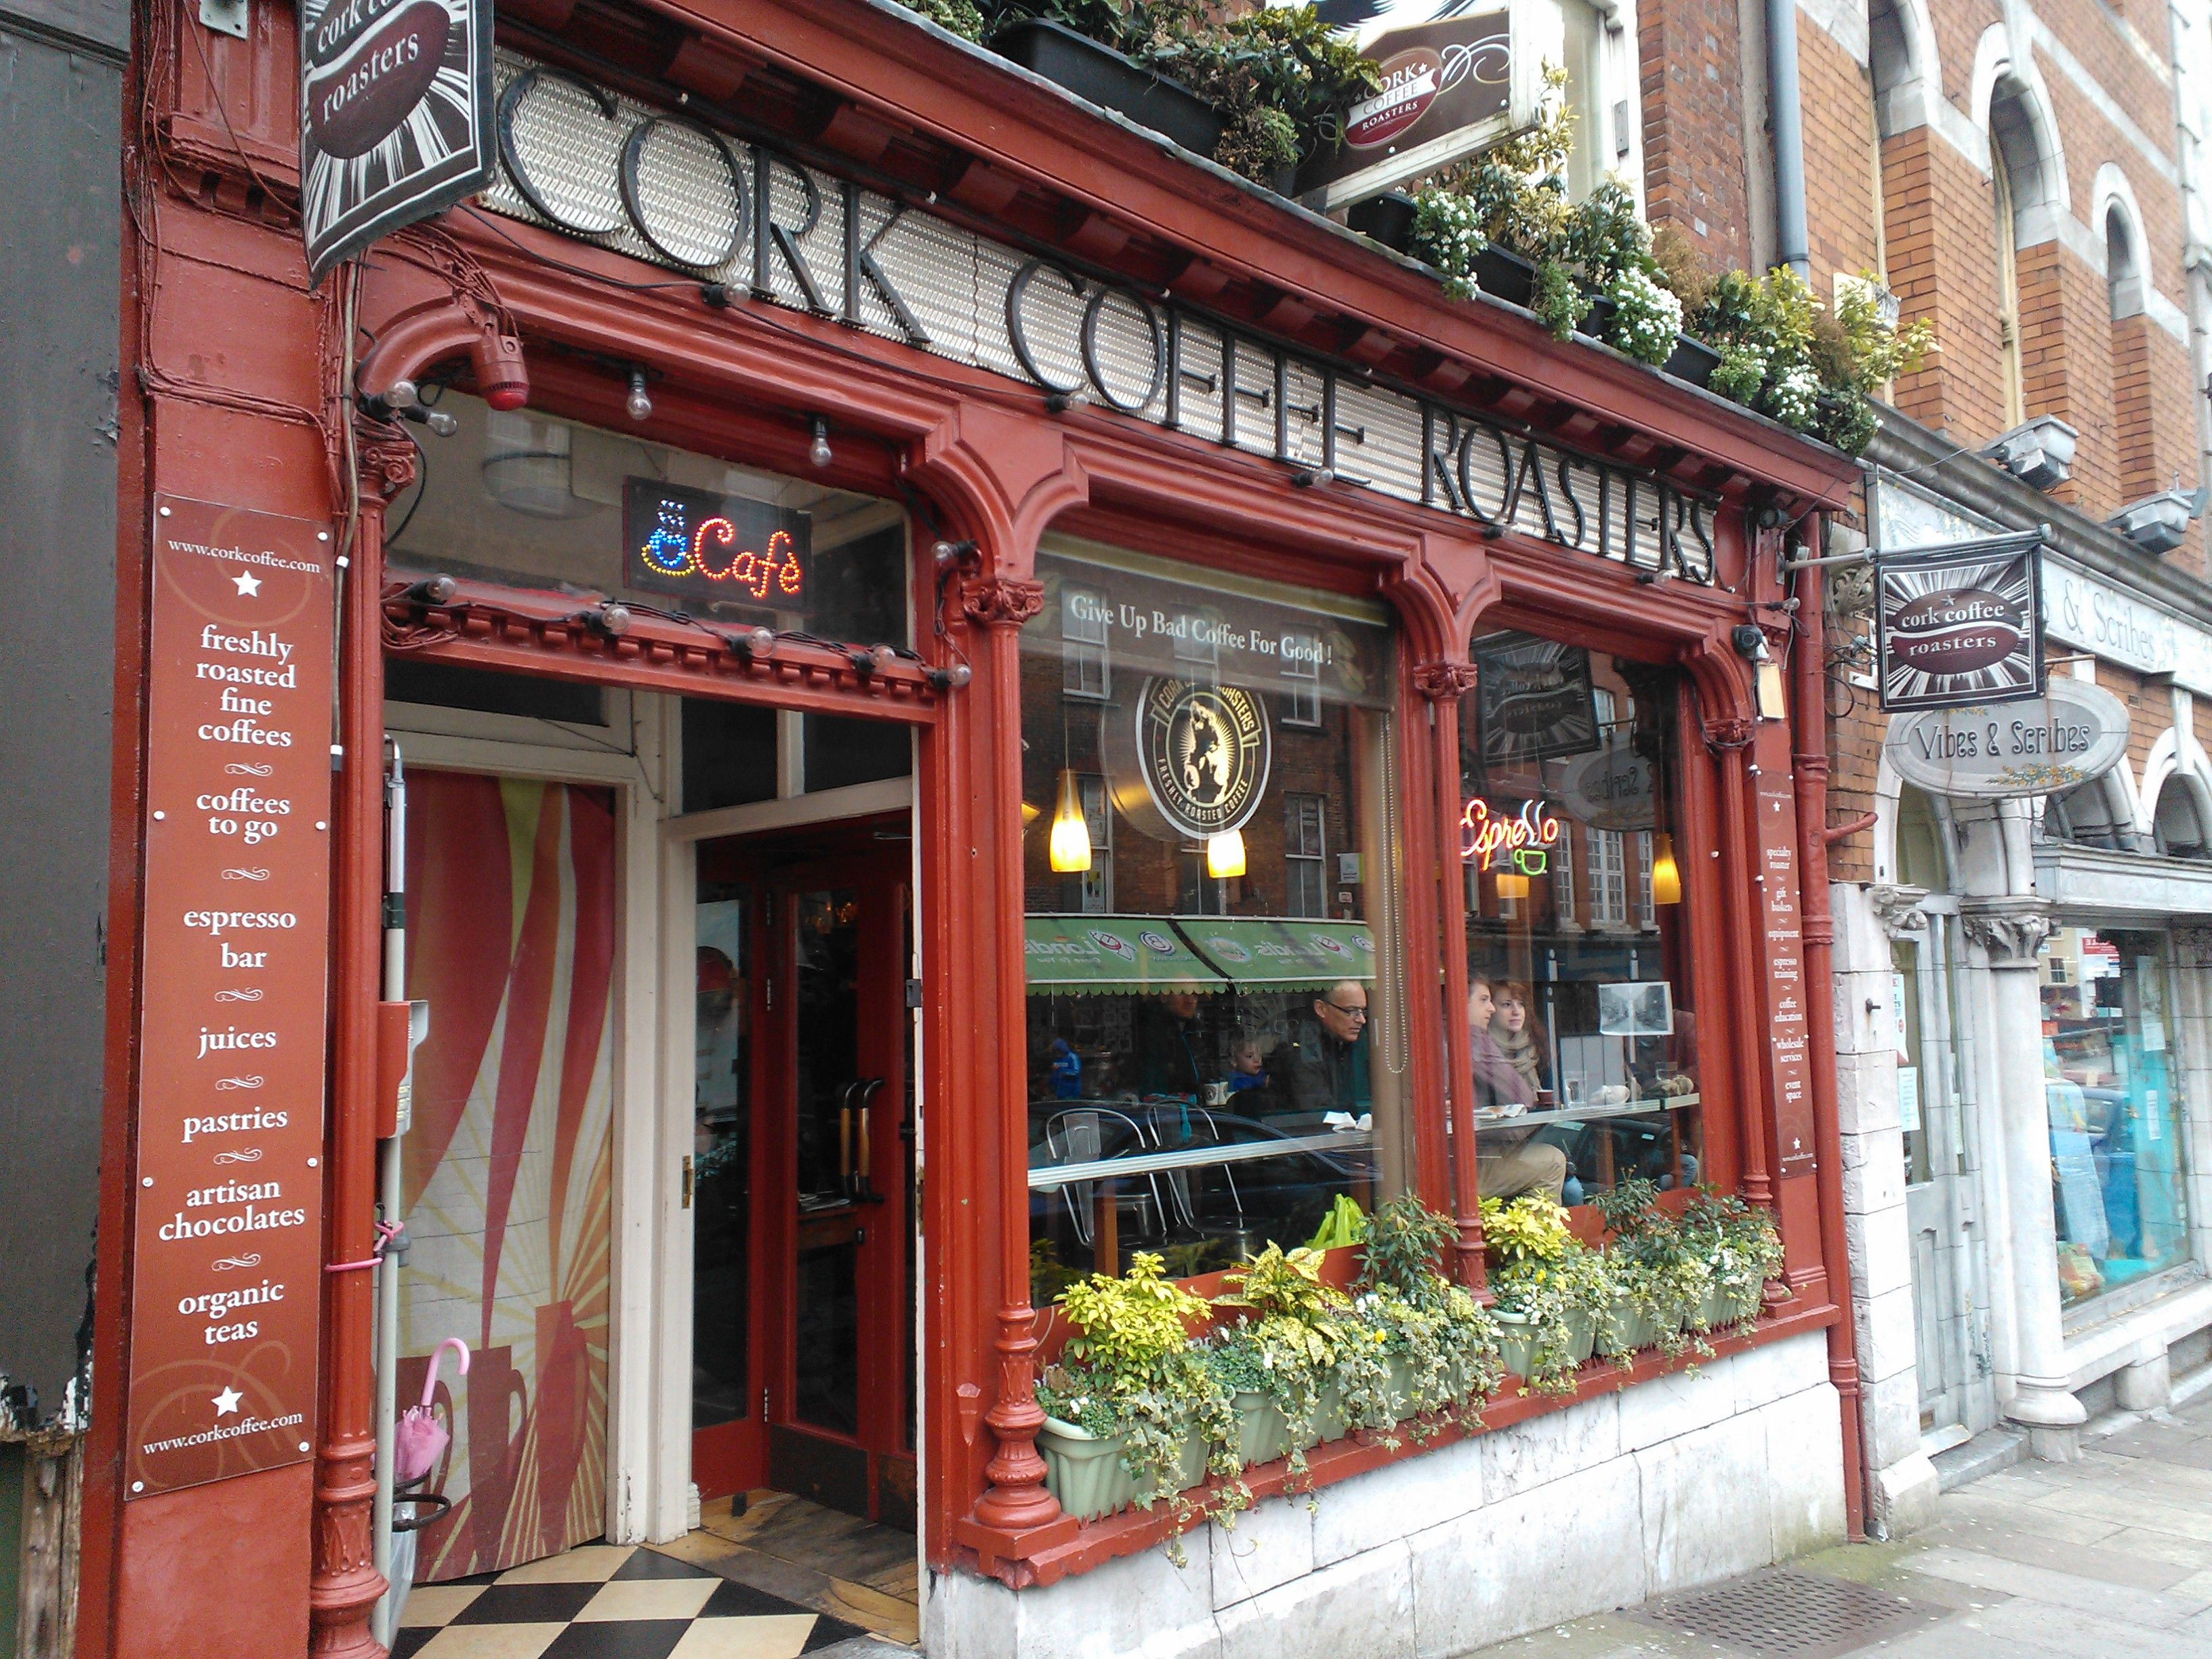 cork coffee roasters, mccartney street, ireland. damn good coffee